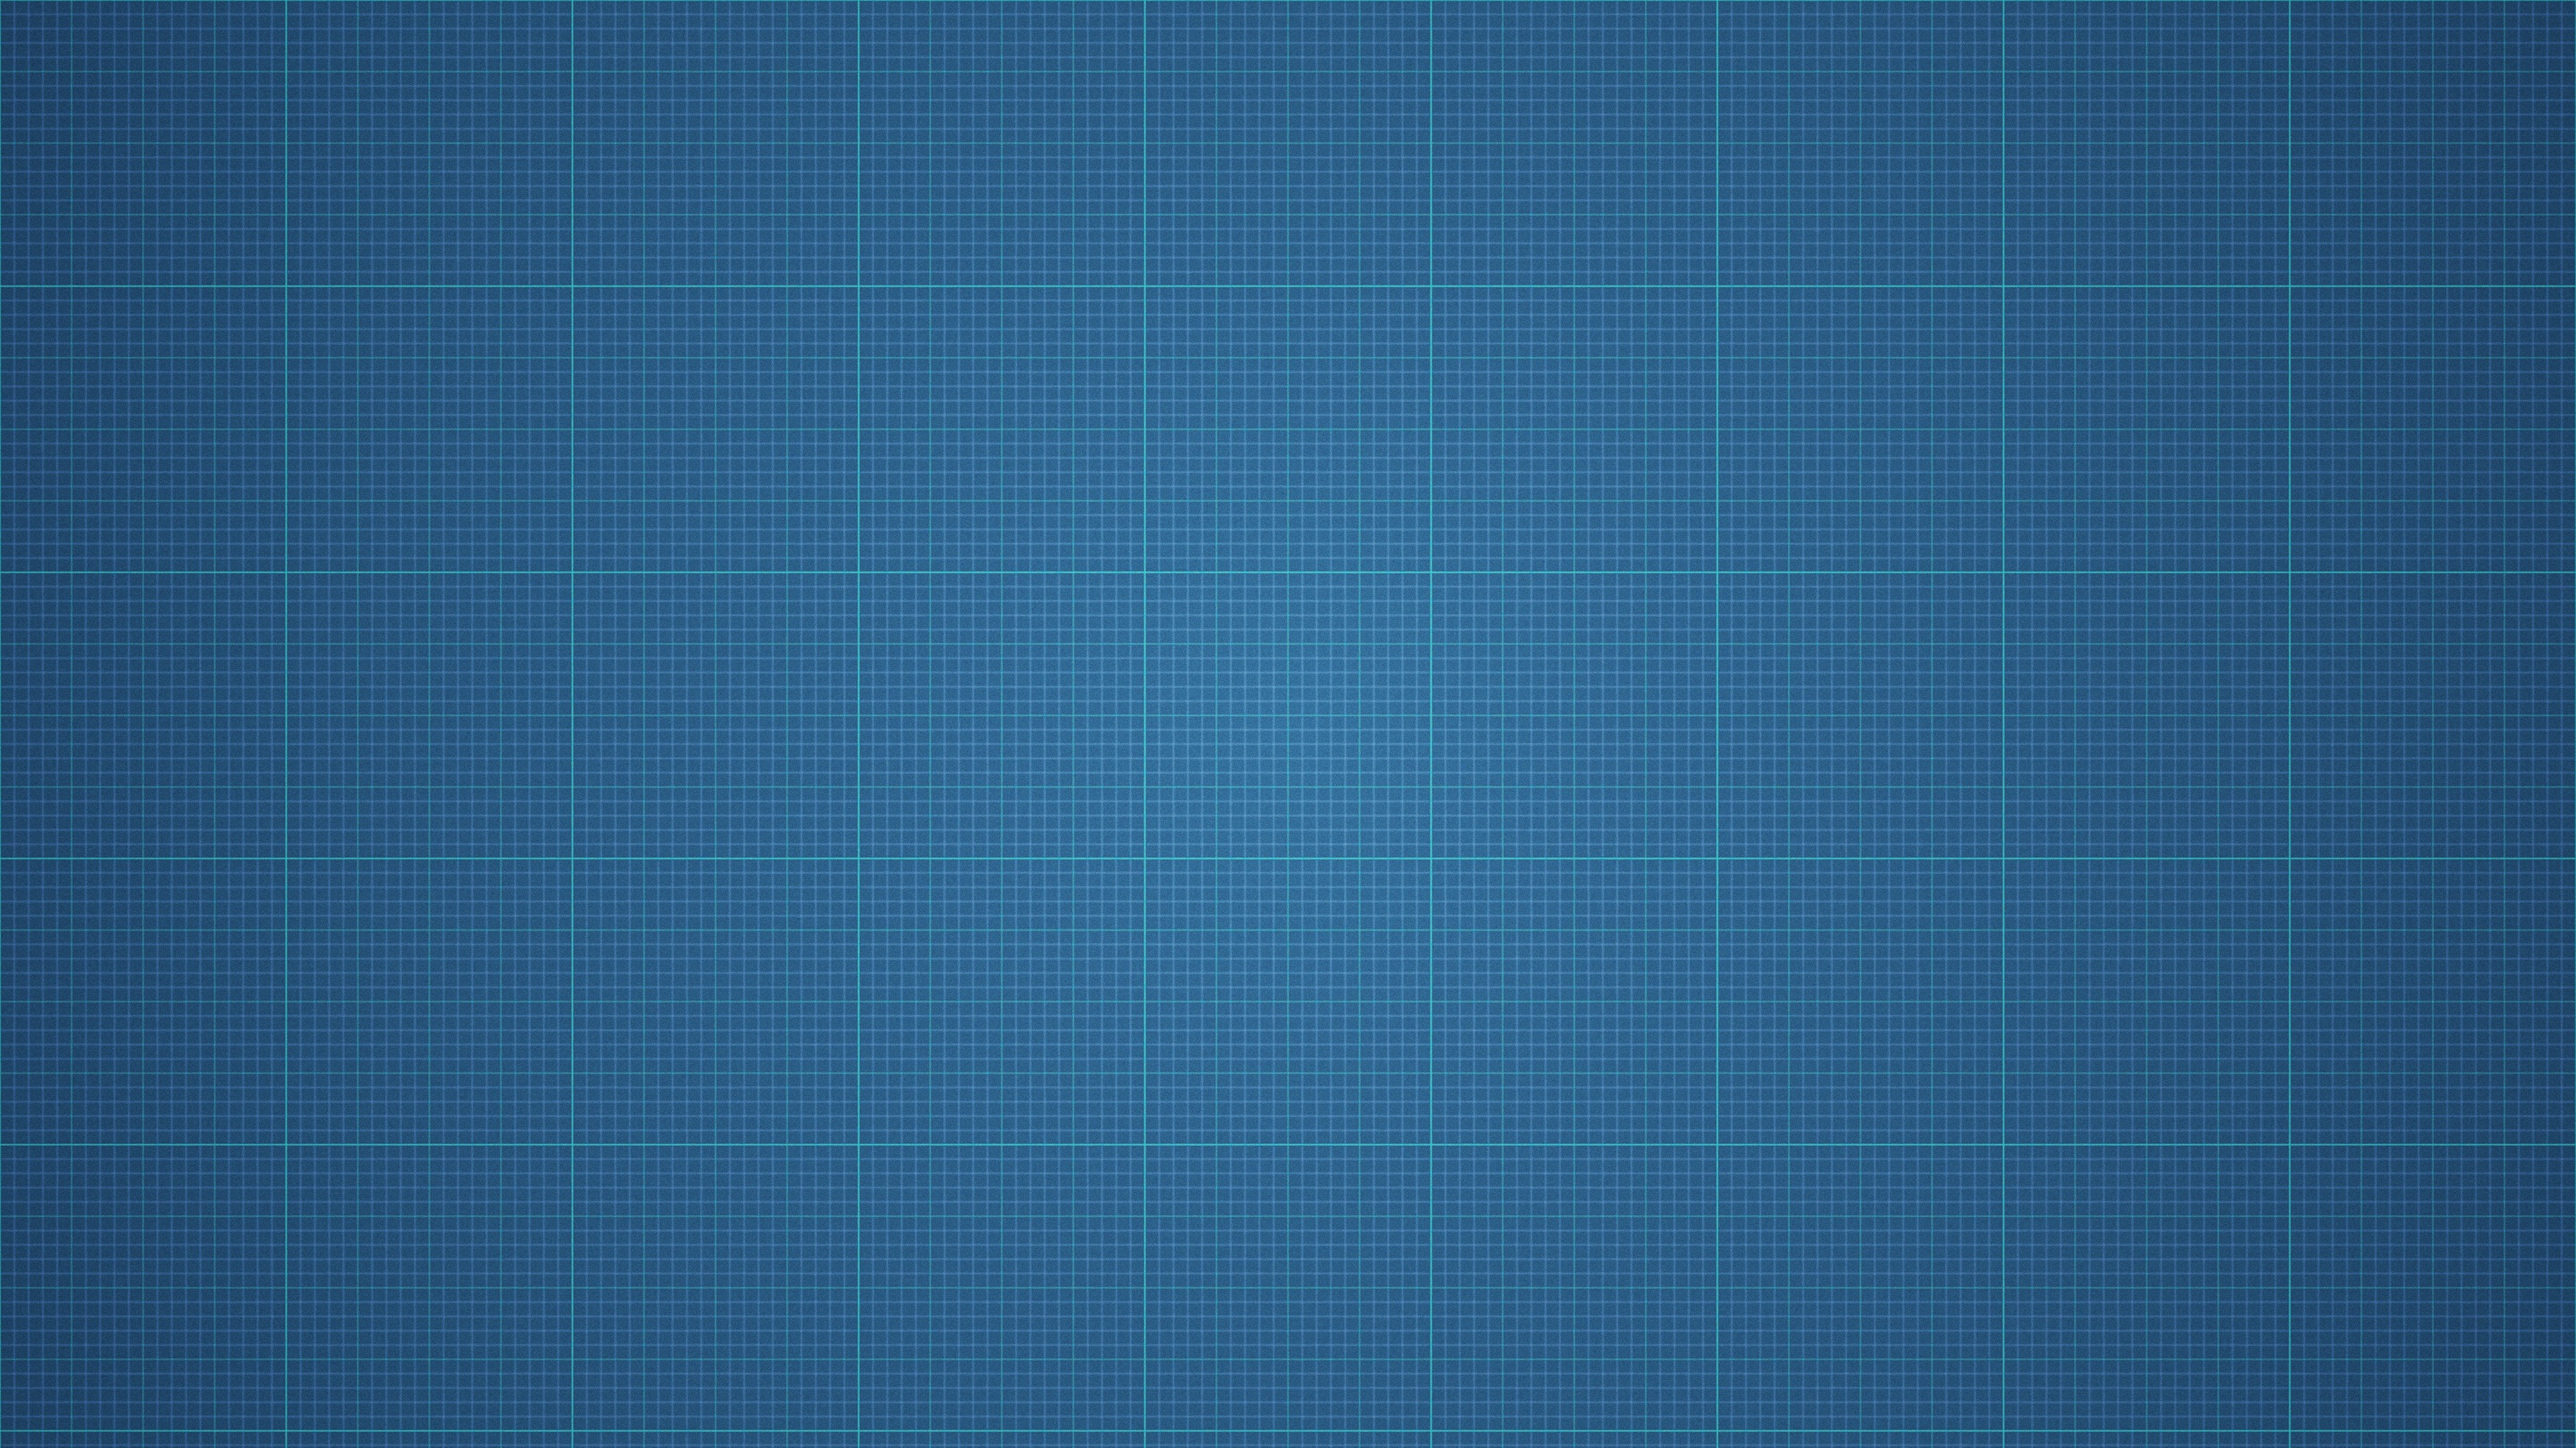 Blueprint background download free cool hd backgrounds for popular blueprint background 2605x2000 malvernweather Image collections